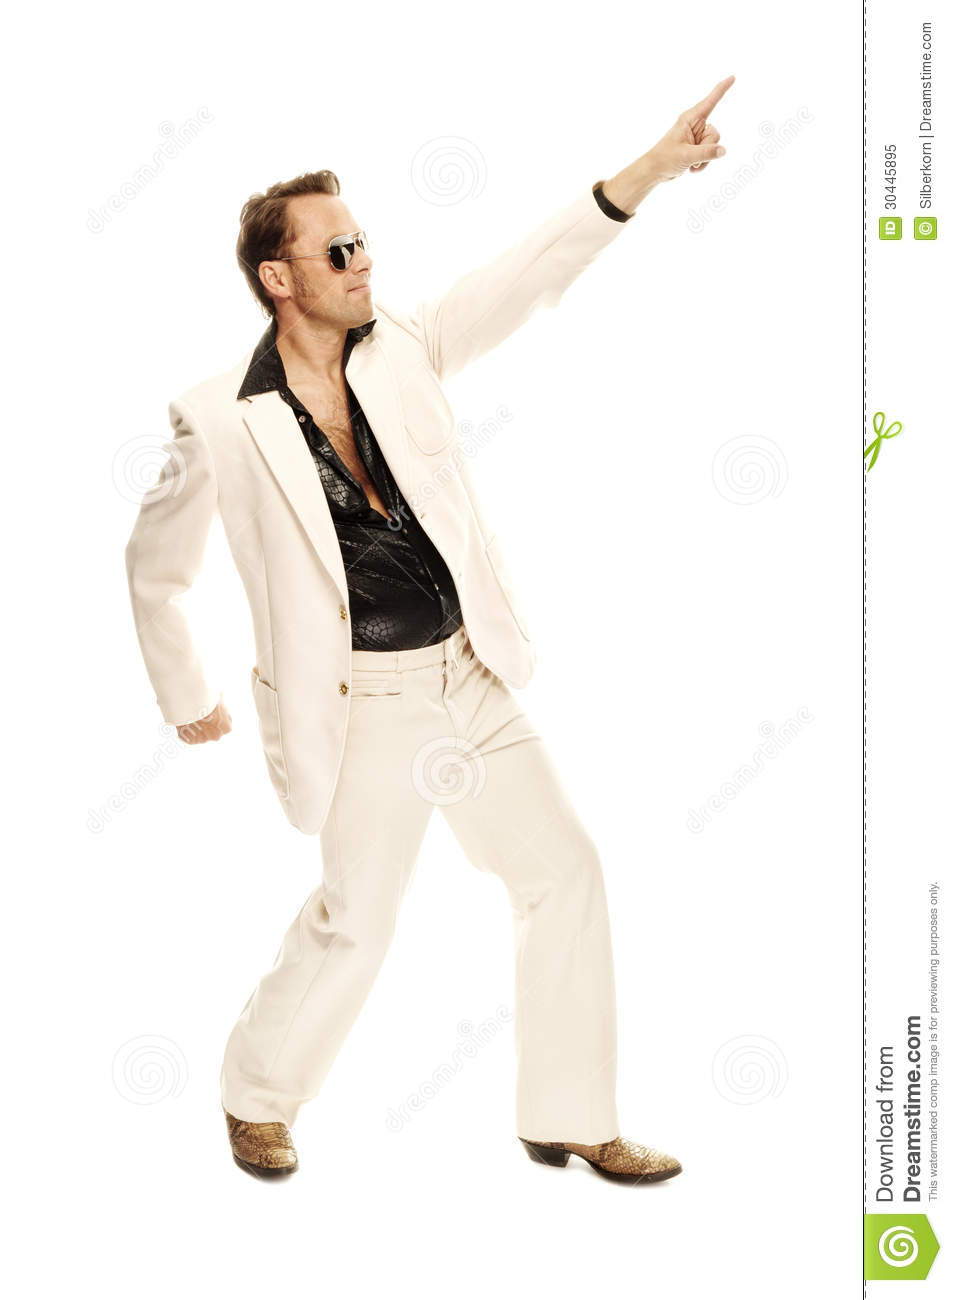 mad disco dancer in white suit and snake leather boots crazy person clipart Crazy Girl Clip Art